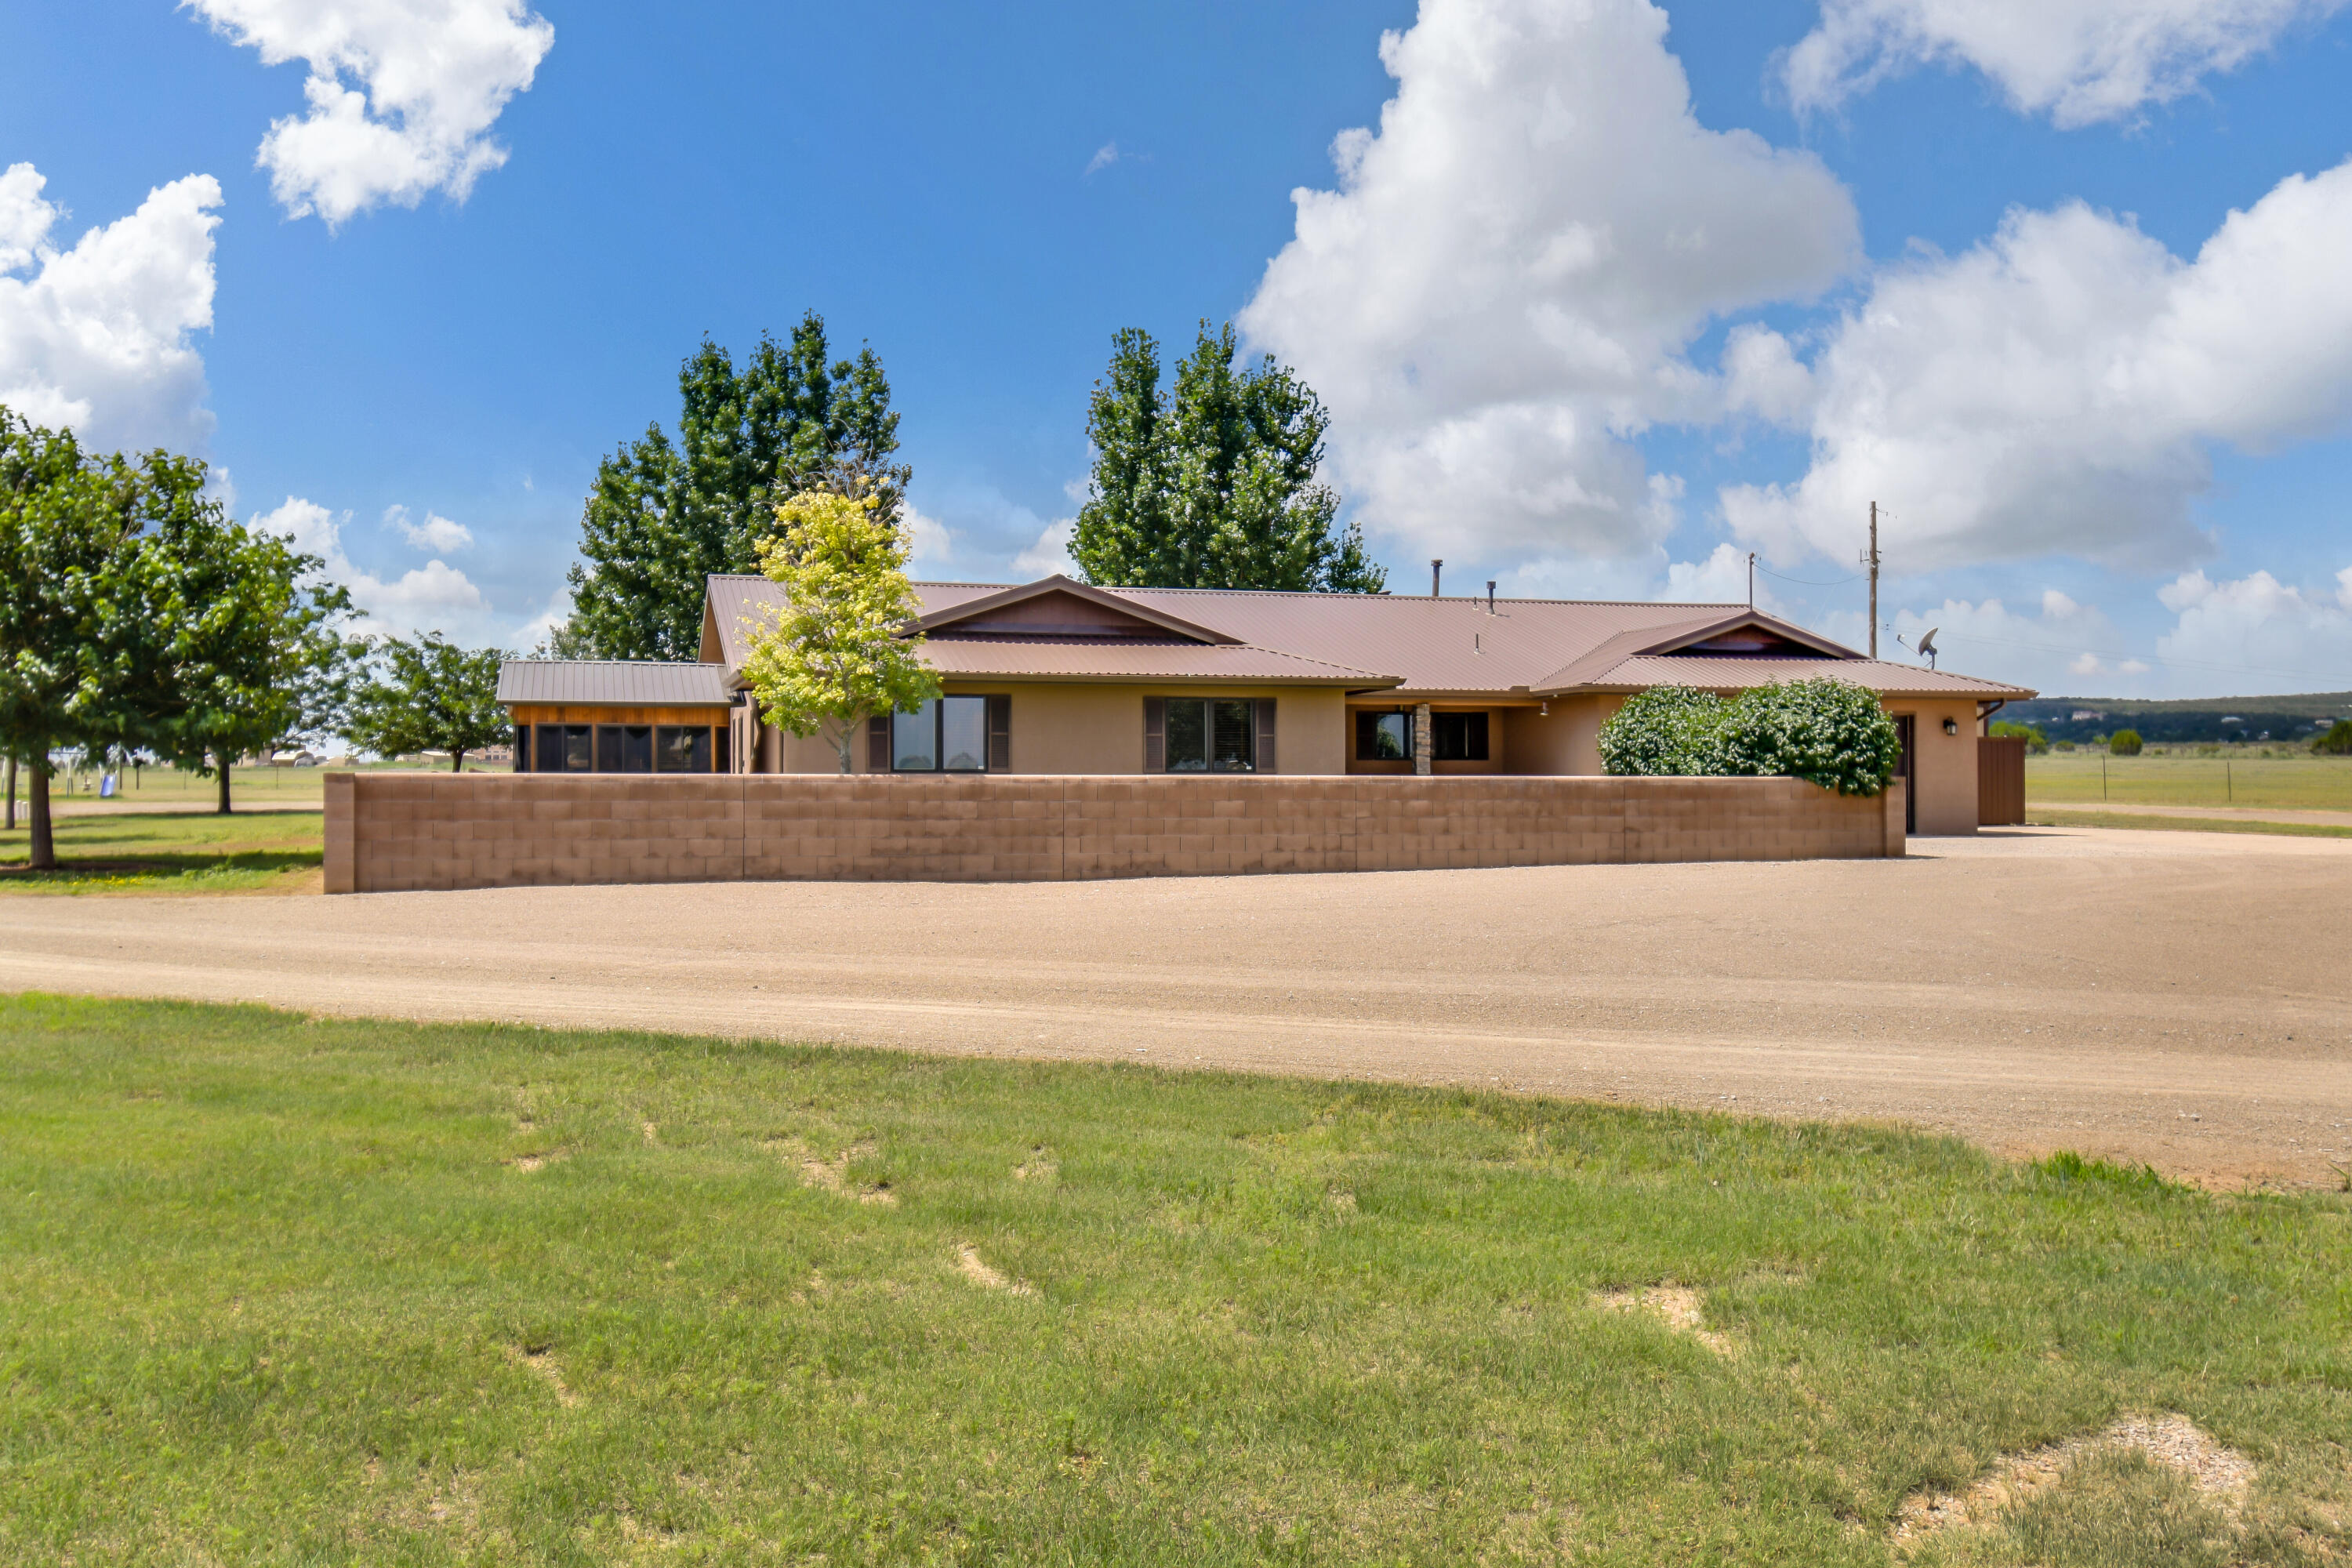 **Accepted Offer with a 72 hour First Right of Refusal** This stunning horse property is a rare find of country living at its finest. Just minutes from Edgewood and I-40, 25 minutes into Albuquerque and 50 minutes to Santa Fe. Gorgeous, well maintained and loved 1994 Crombie Custom-Built 2578 sq ft, 3 bedroom, 2 bathroom home. This home faces northeast with beautiful views of South Mountain and The Sandia's. The home has custom Red Oak/Walnut with brass inlay wood flooring and ceramic tile. Red Oak cabinetry and doors, newer Granite counters throughout, remodeled kitchen in 2017, newer stainless steel appliances, updated fixtures, double ovens for the chef. Bathrooms were remodeled in 2019. See More....